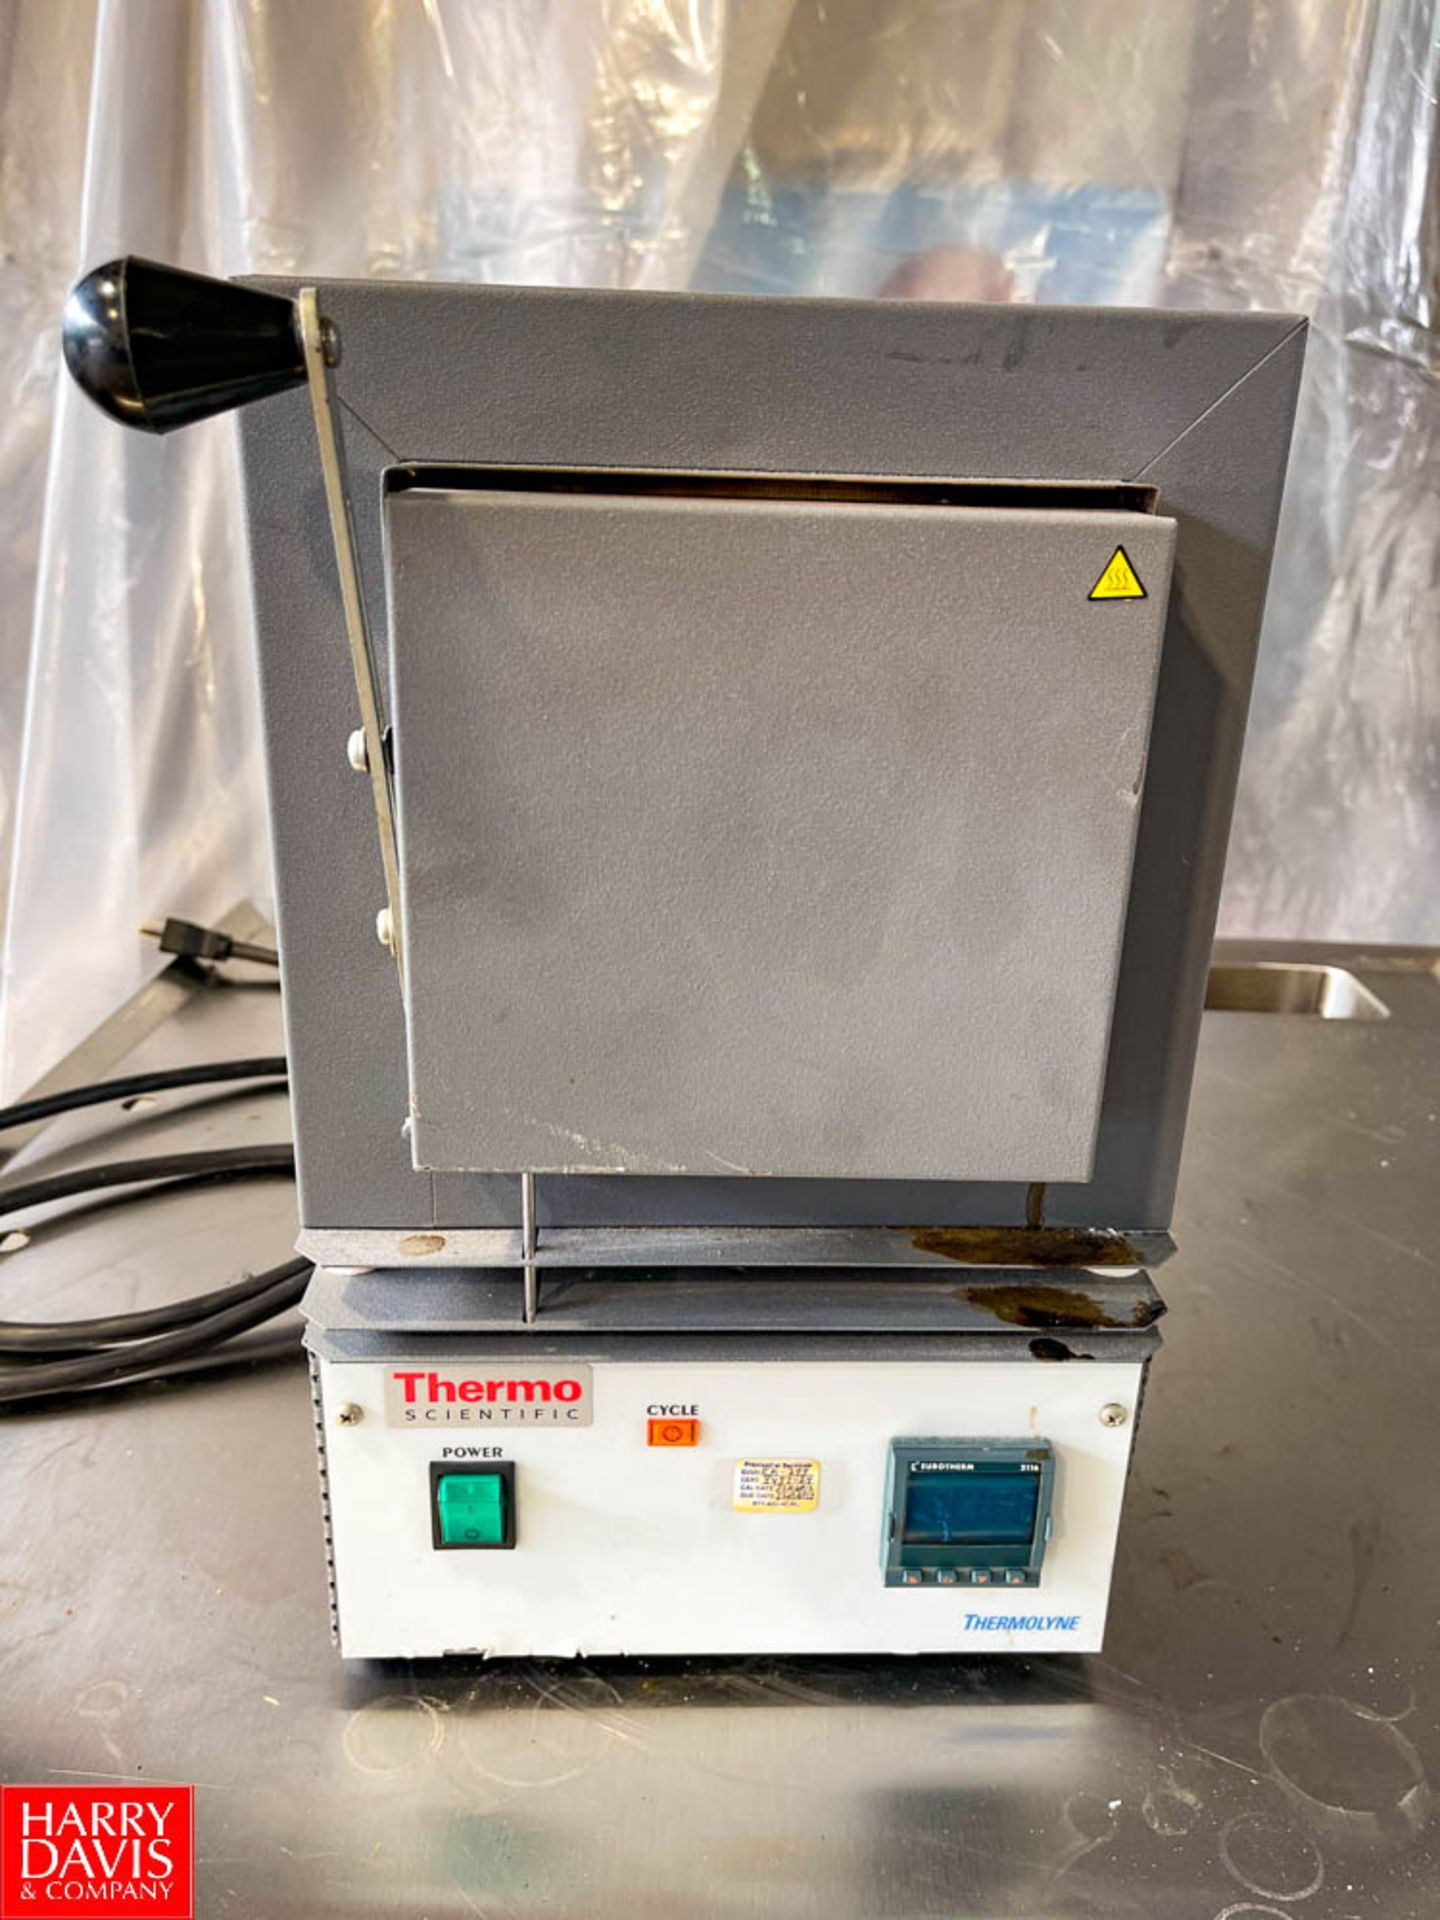 Thermo Scientific Industrial Benchtop Muffle Furnace